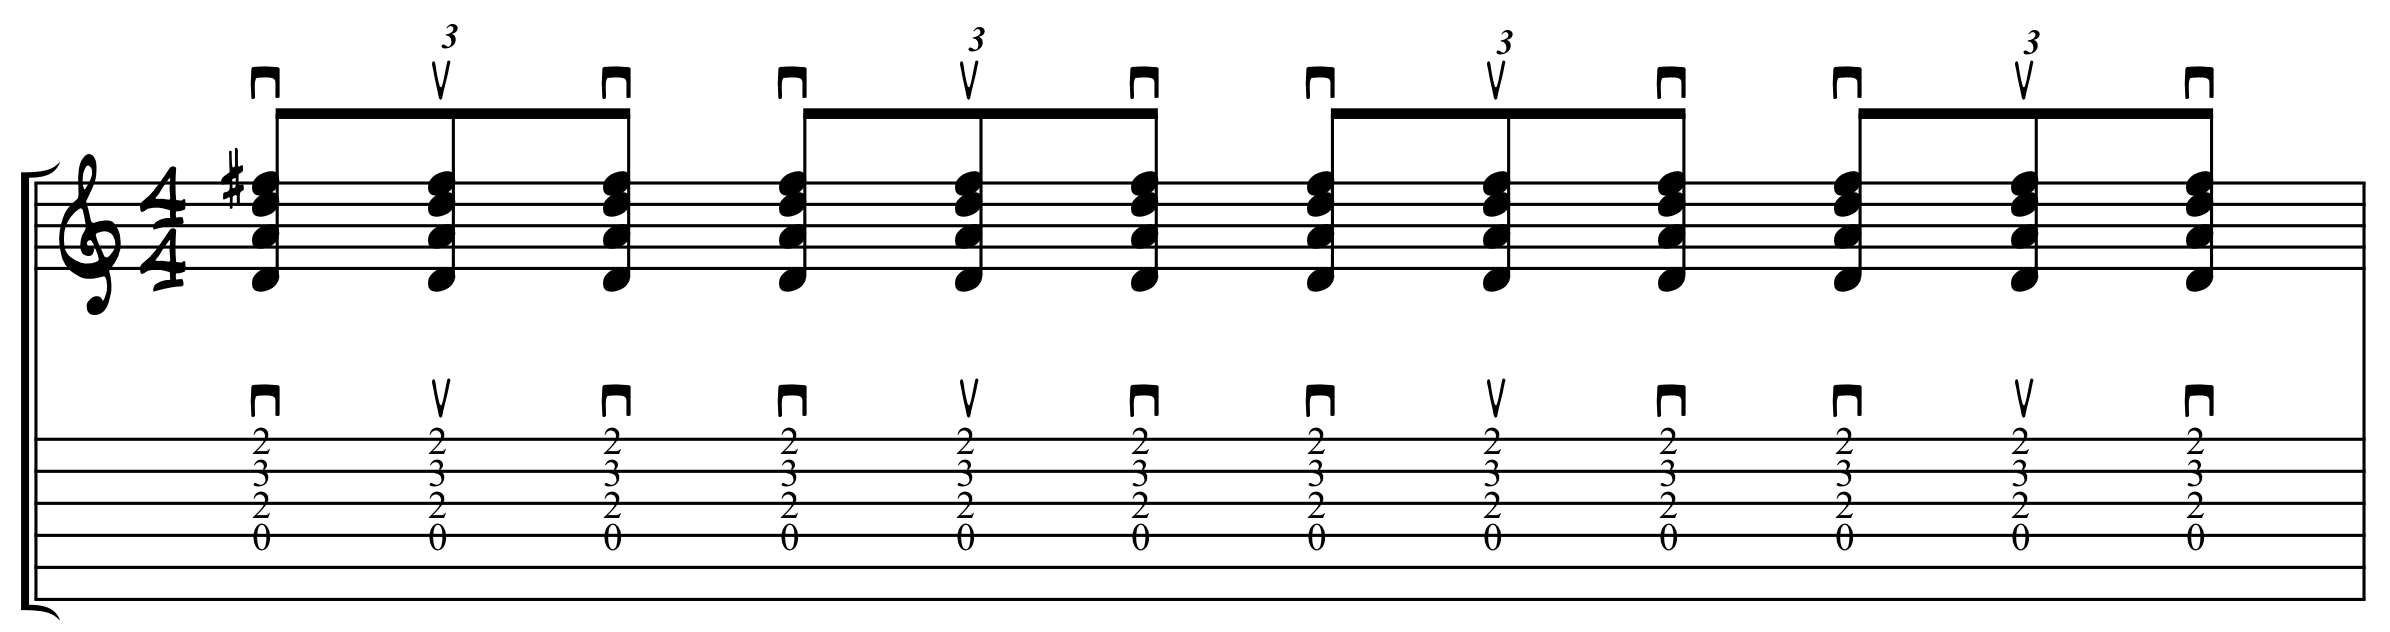 Eighth Note Triplet Strums Downstroke on Beat